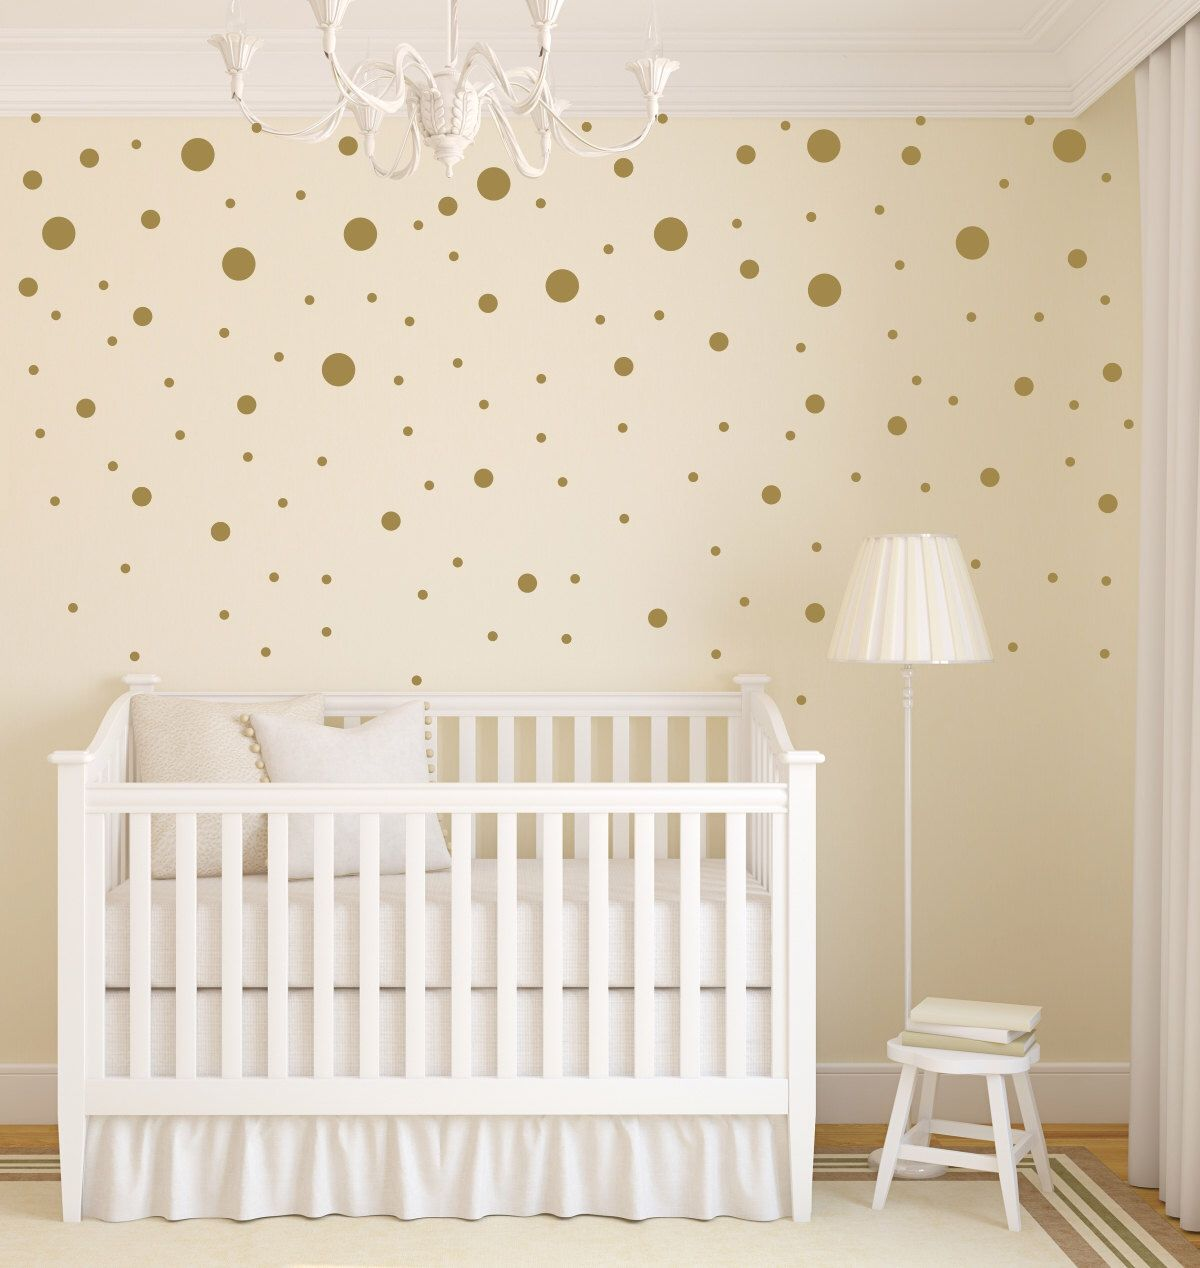 gold dot decals polka dot wall decal gold vinyl dots gold gold dot decals polka dot wall decal gold vinyl dots gold nursery decor